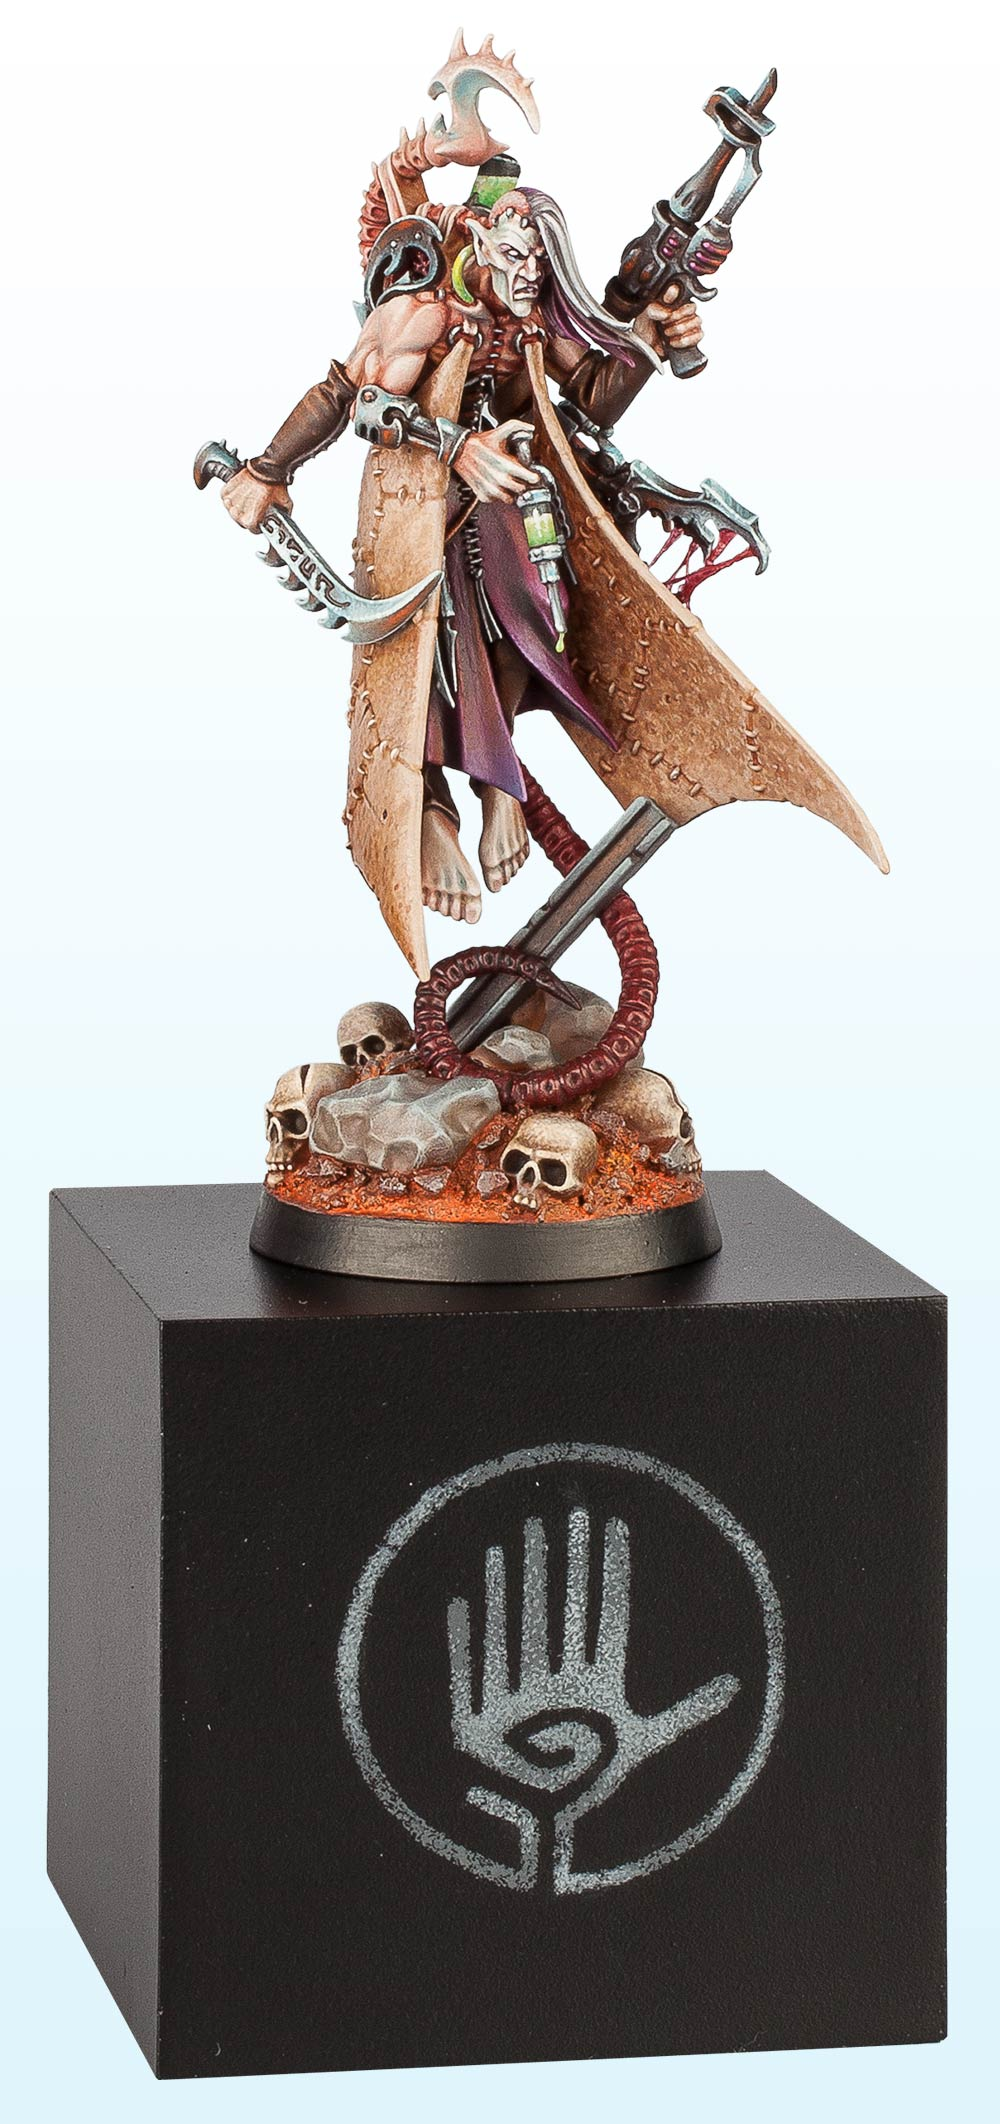 Warhammer 40,000 Single Miniature: Bronze – 2014